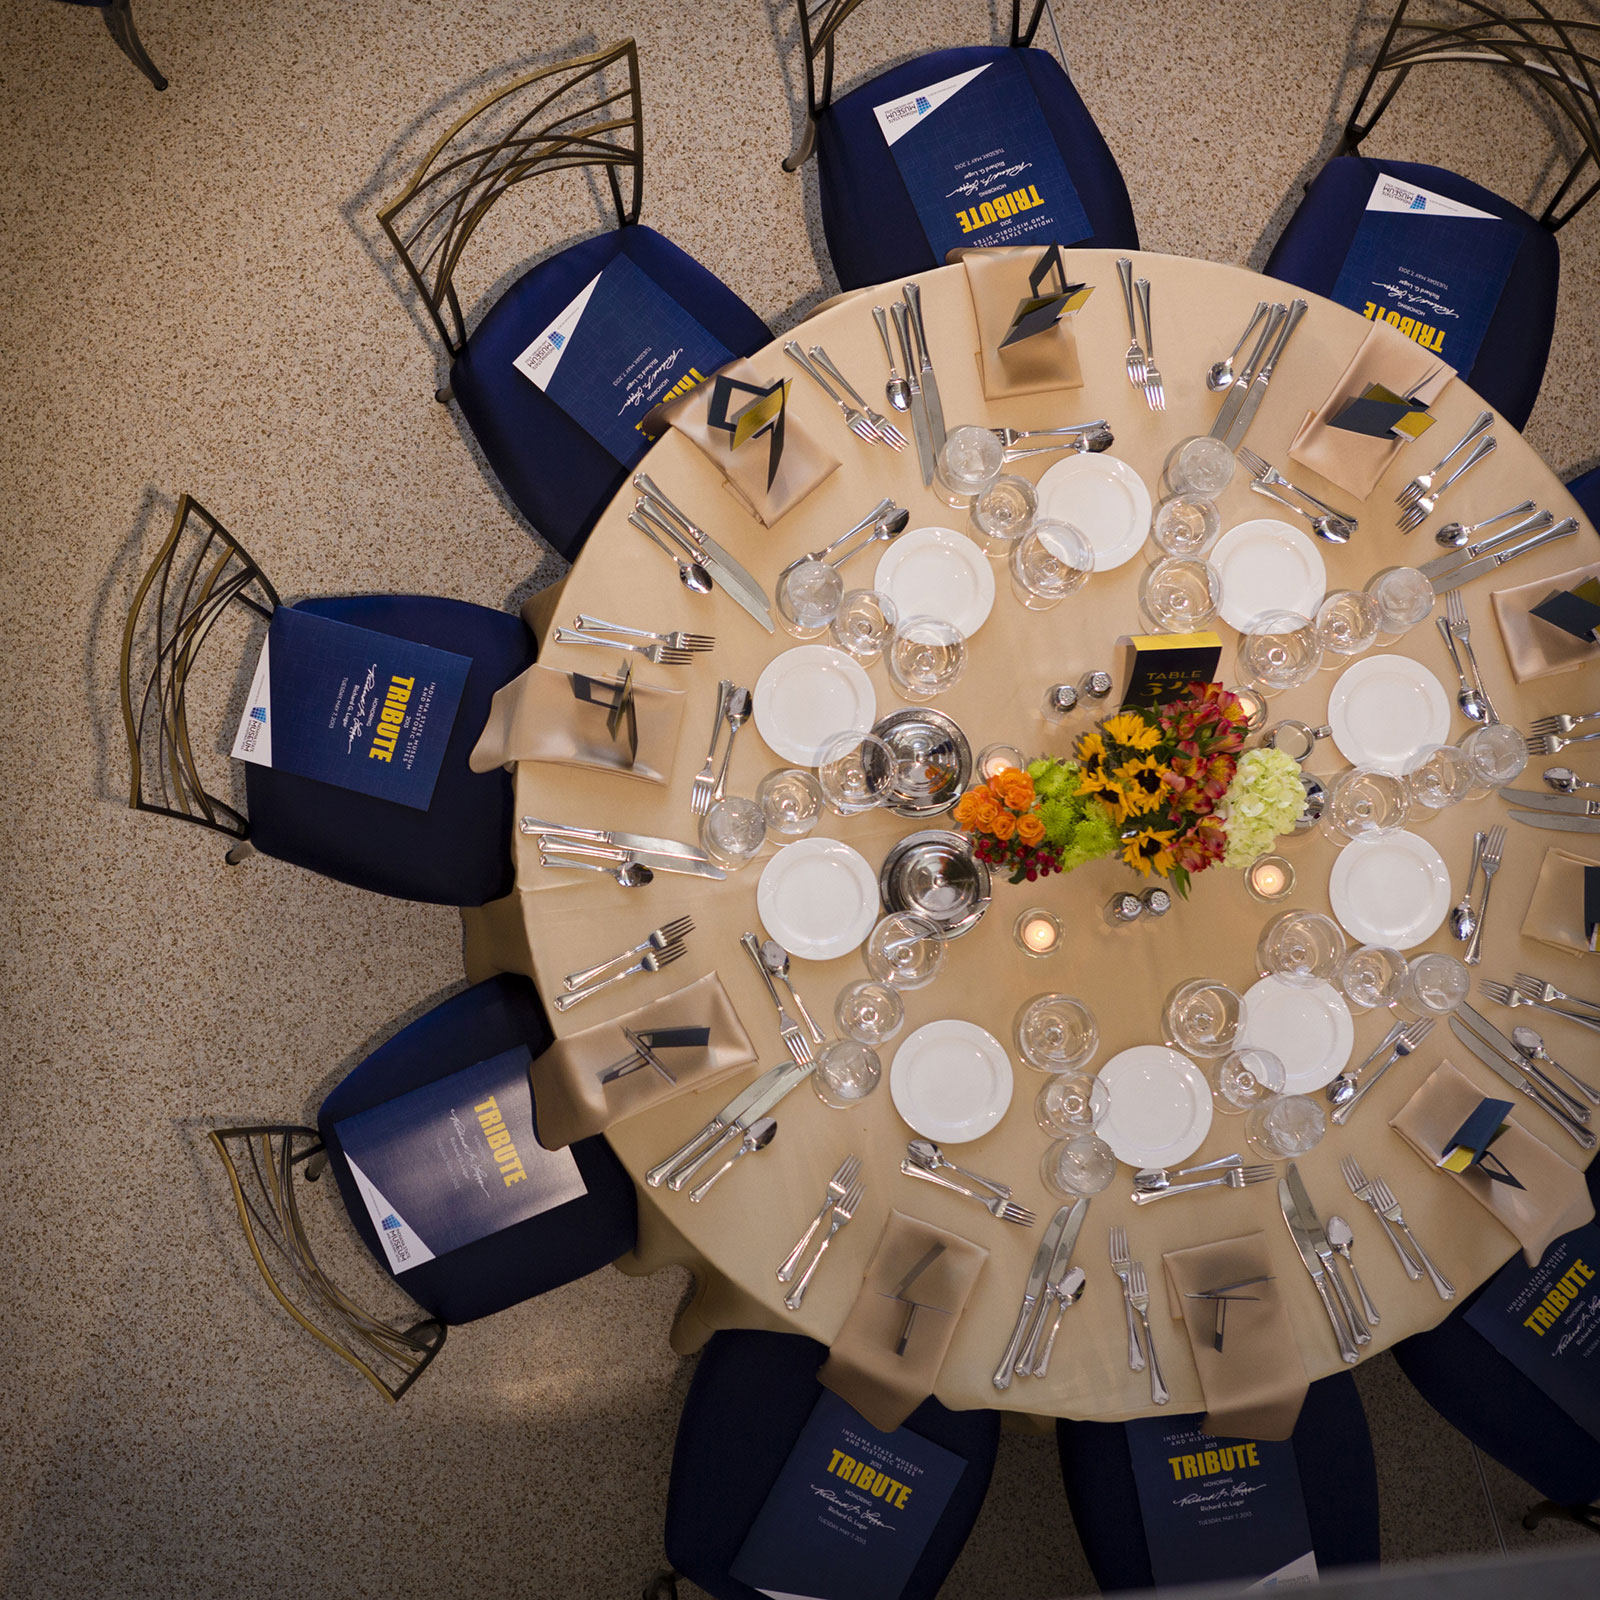 Table Setting in the Dean and Barbara White Auditorium